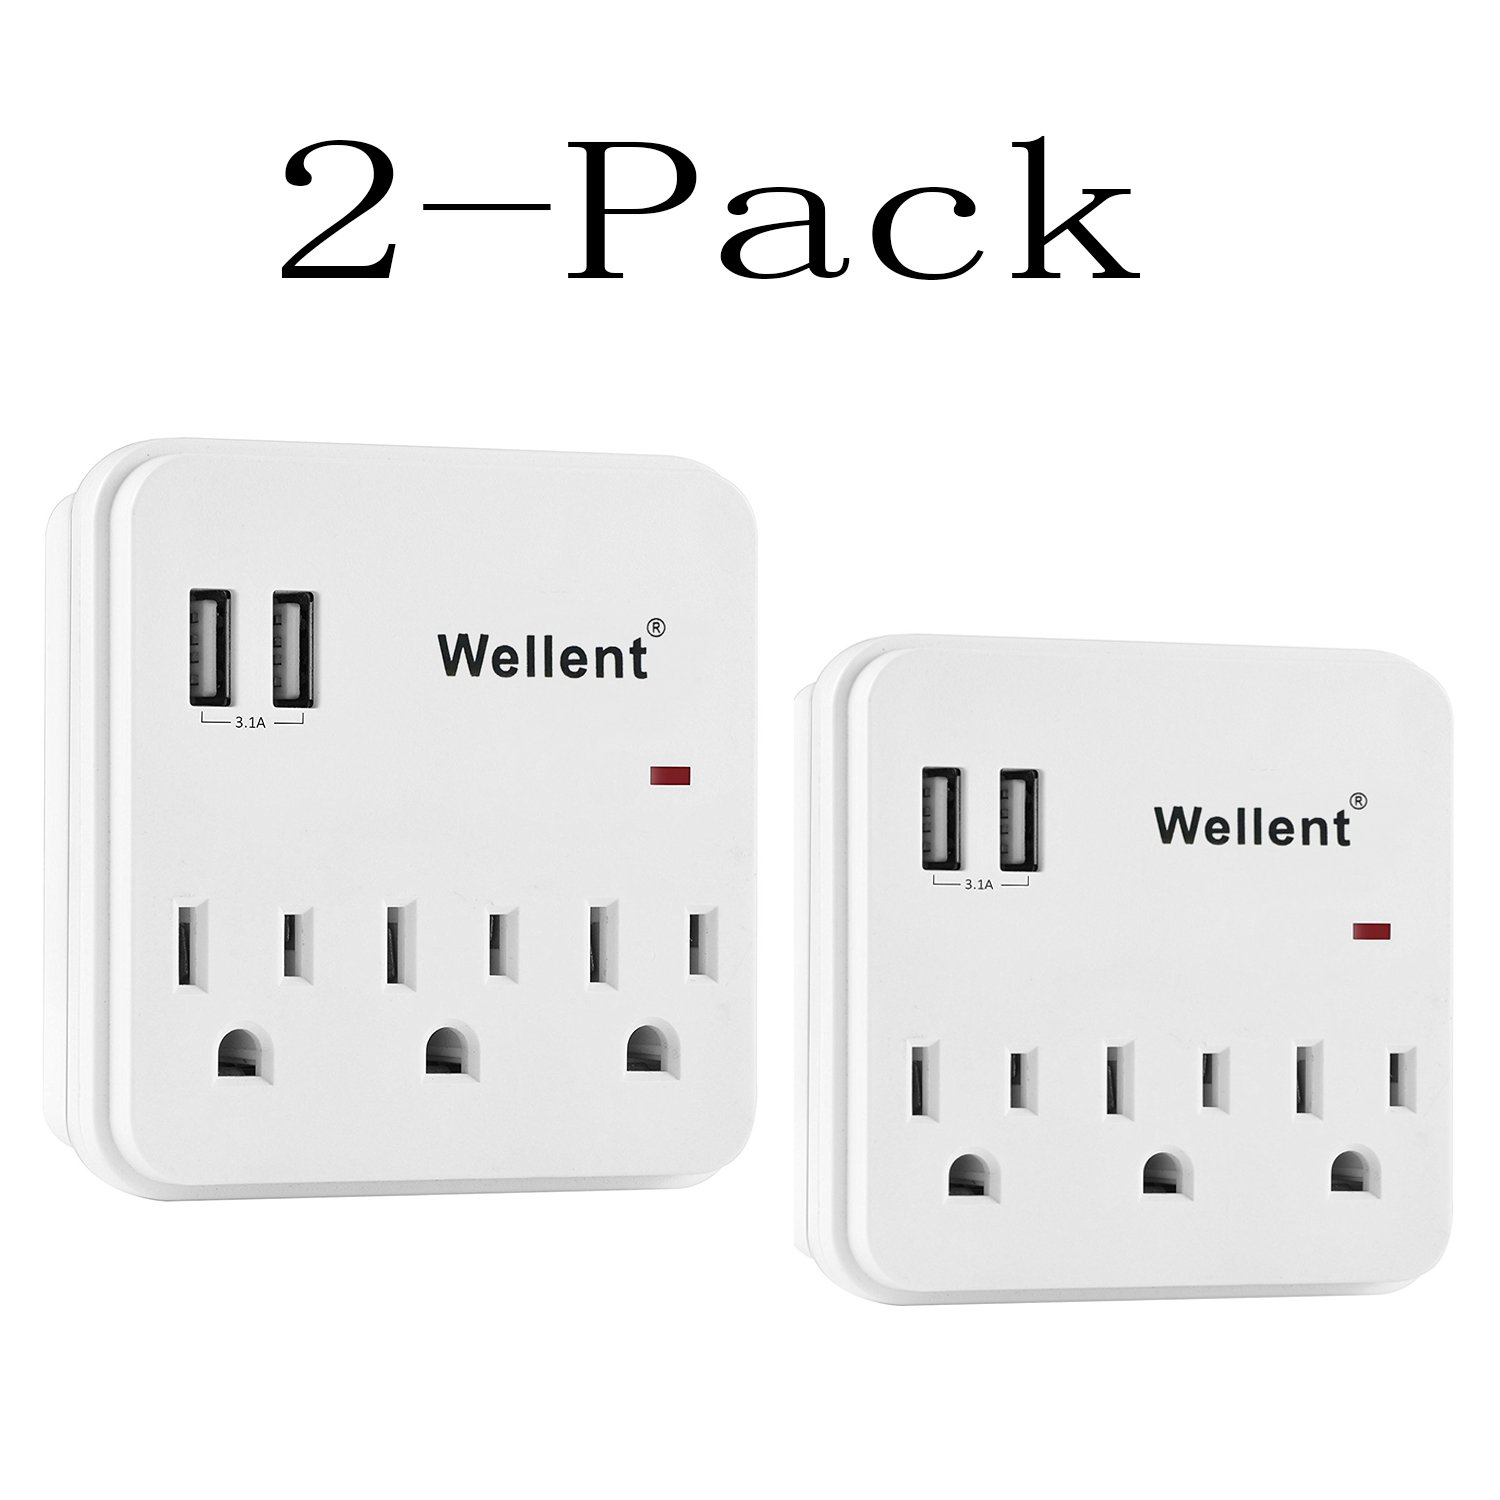 Wellent Multi wall mount power strip with usb ports with 3 Electrical Outlets and 2 USB Charging Ports (2.4A/Port, 3.1A Total), ETL Certified and surge protective device